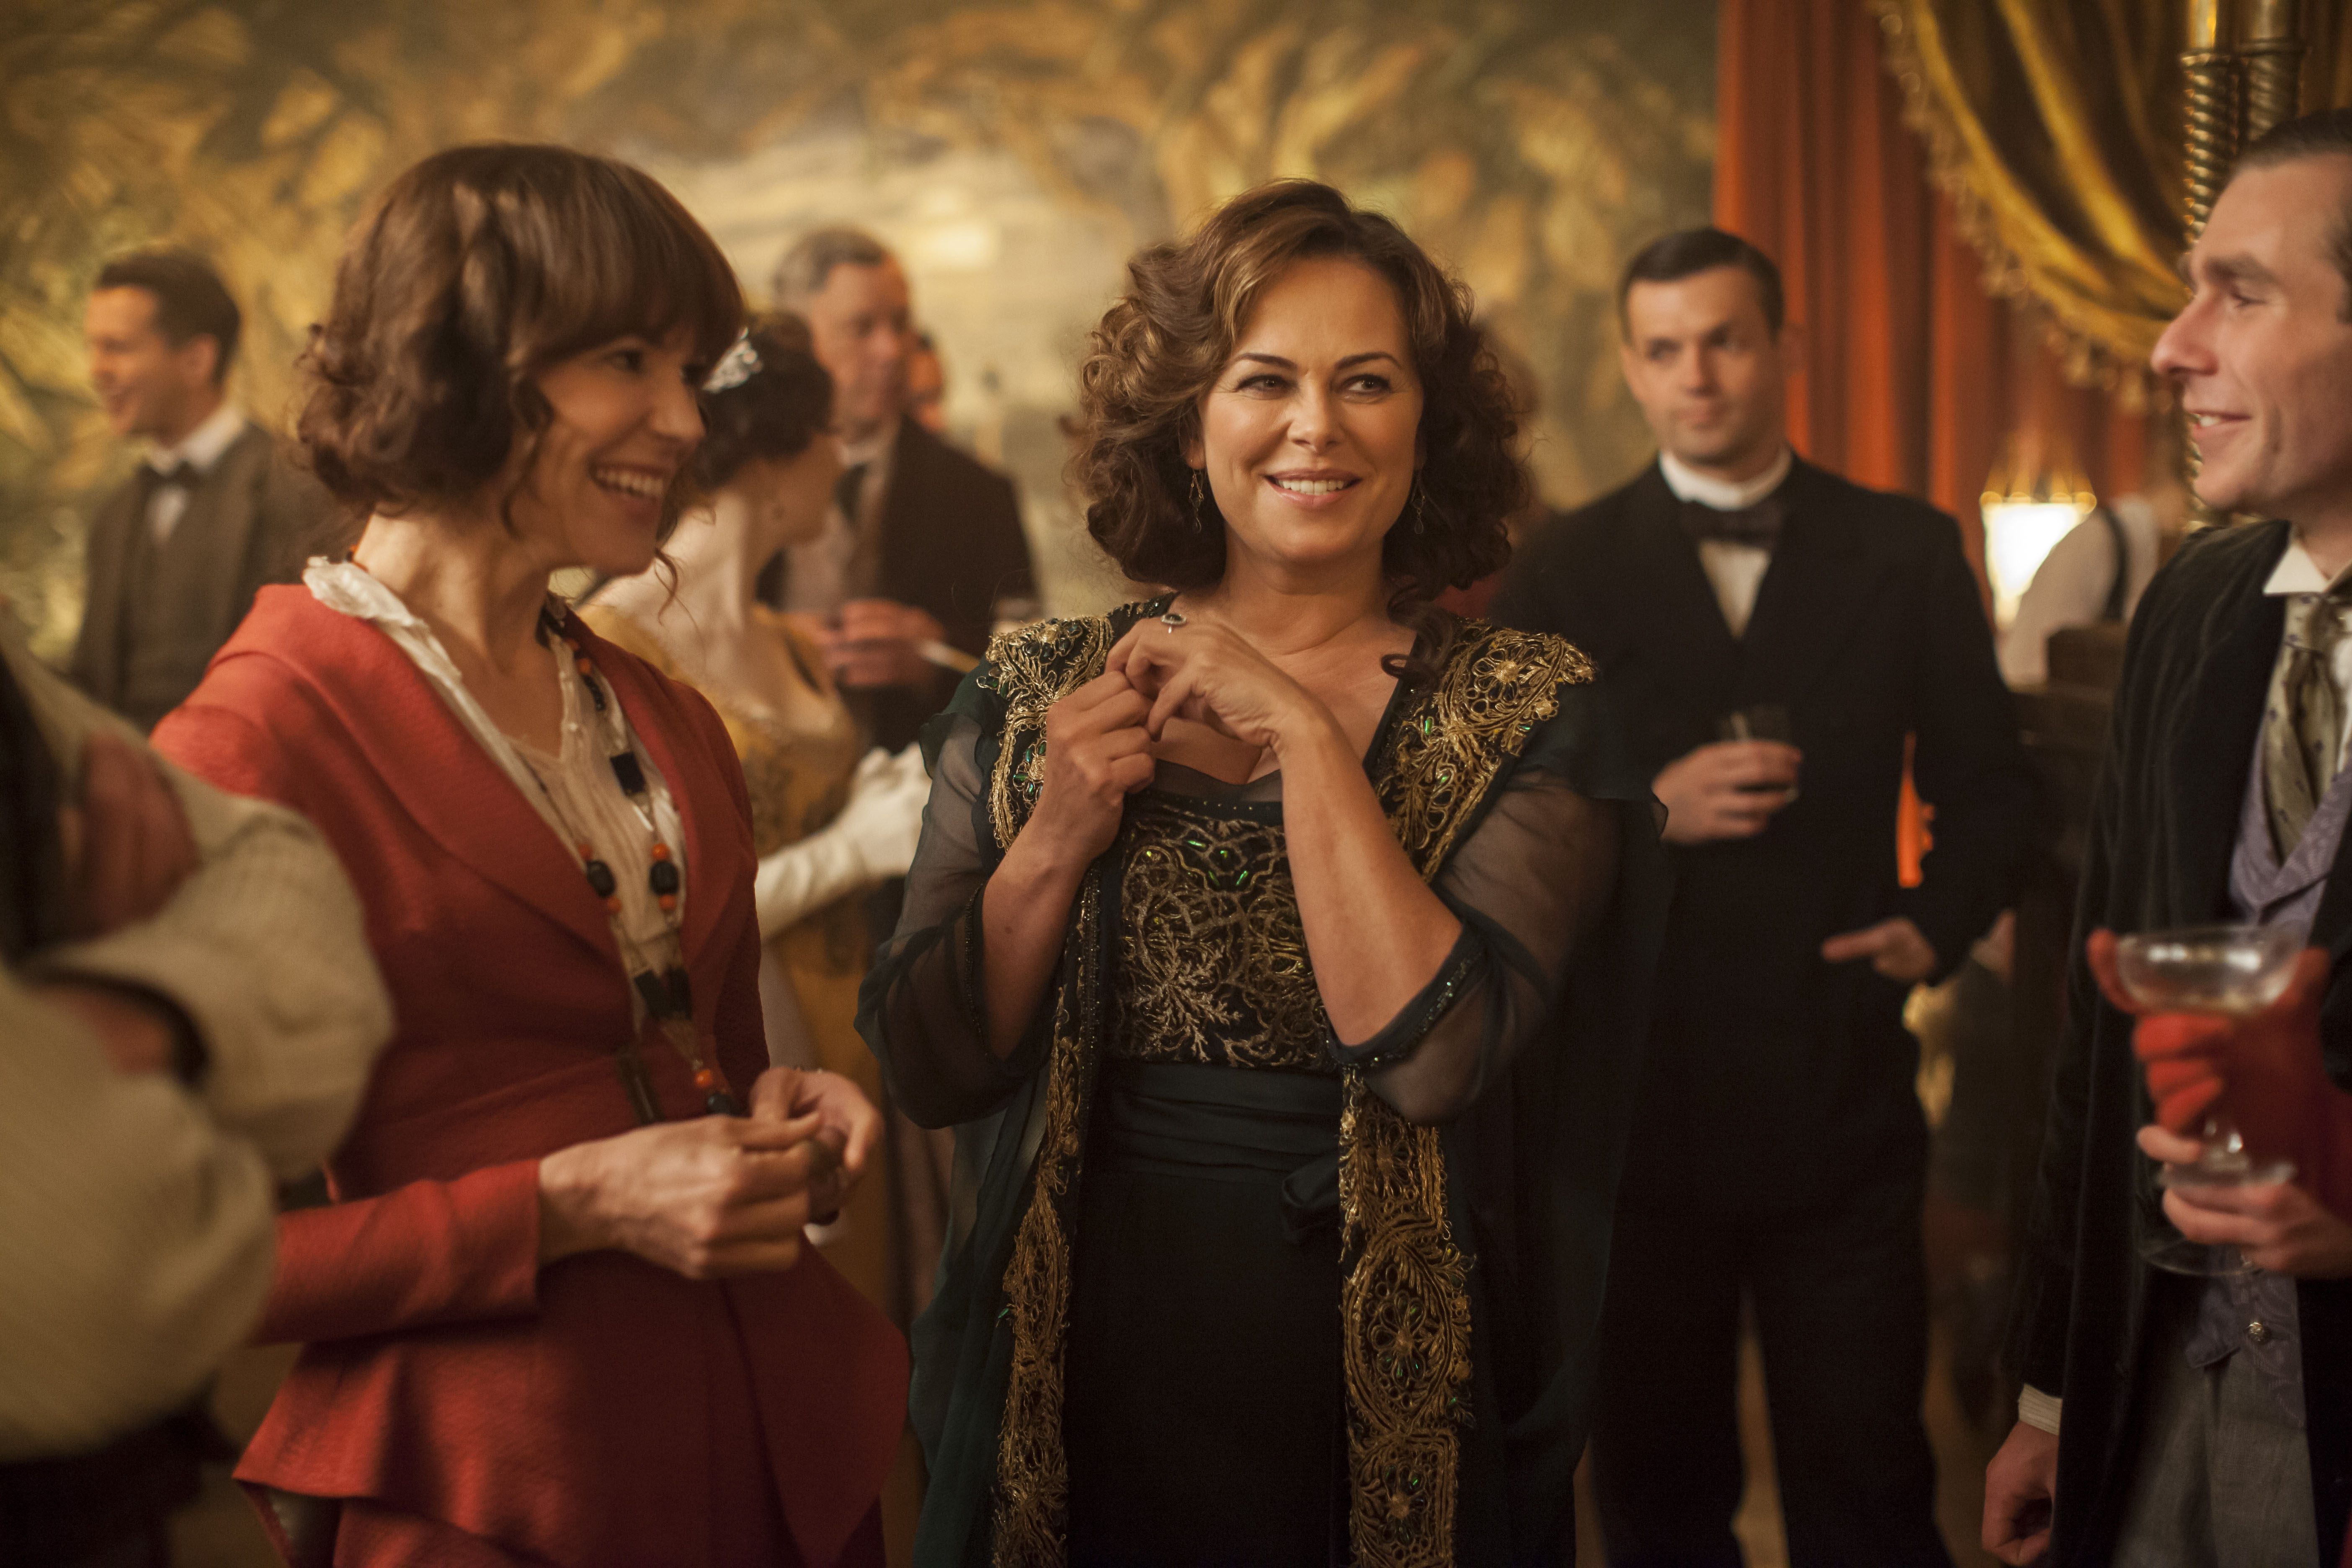 THE PERILS OF DELPHINE: The character of Delphine Day (Polly Walker, right) was inspired by novelist Elinor Glyn, author of scandalous women's fiction. Photo courtesy of ITV Studios for MASTERPIECE